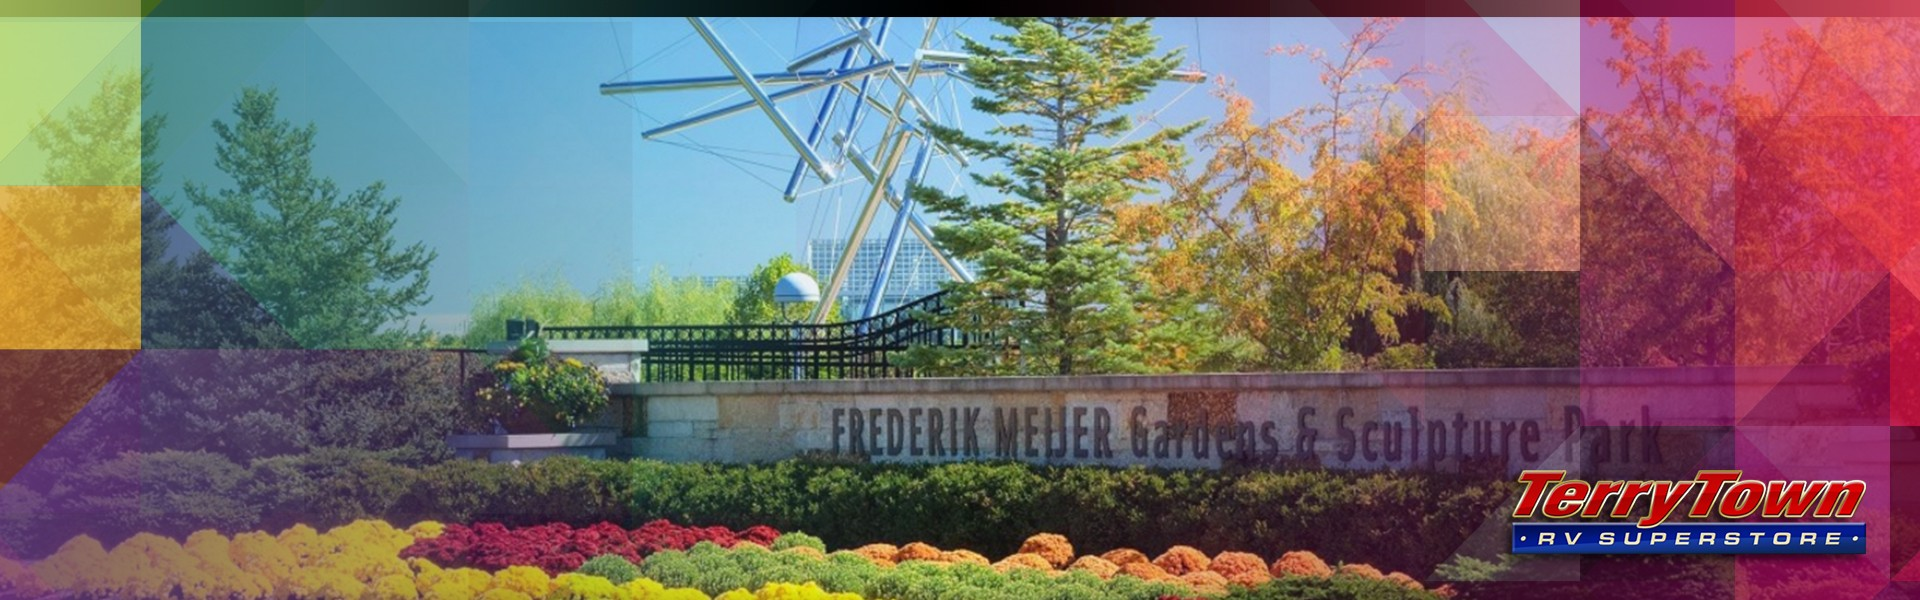 Frederik meijer gardens and sculpture park terrytown rv blog - Frederik meijer gardens and sculpture park ...